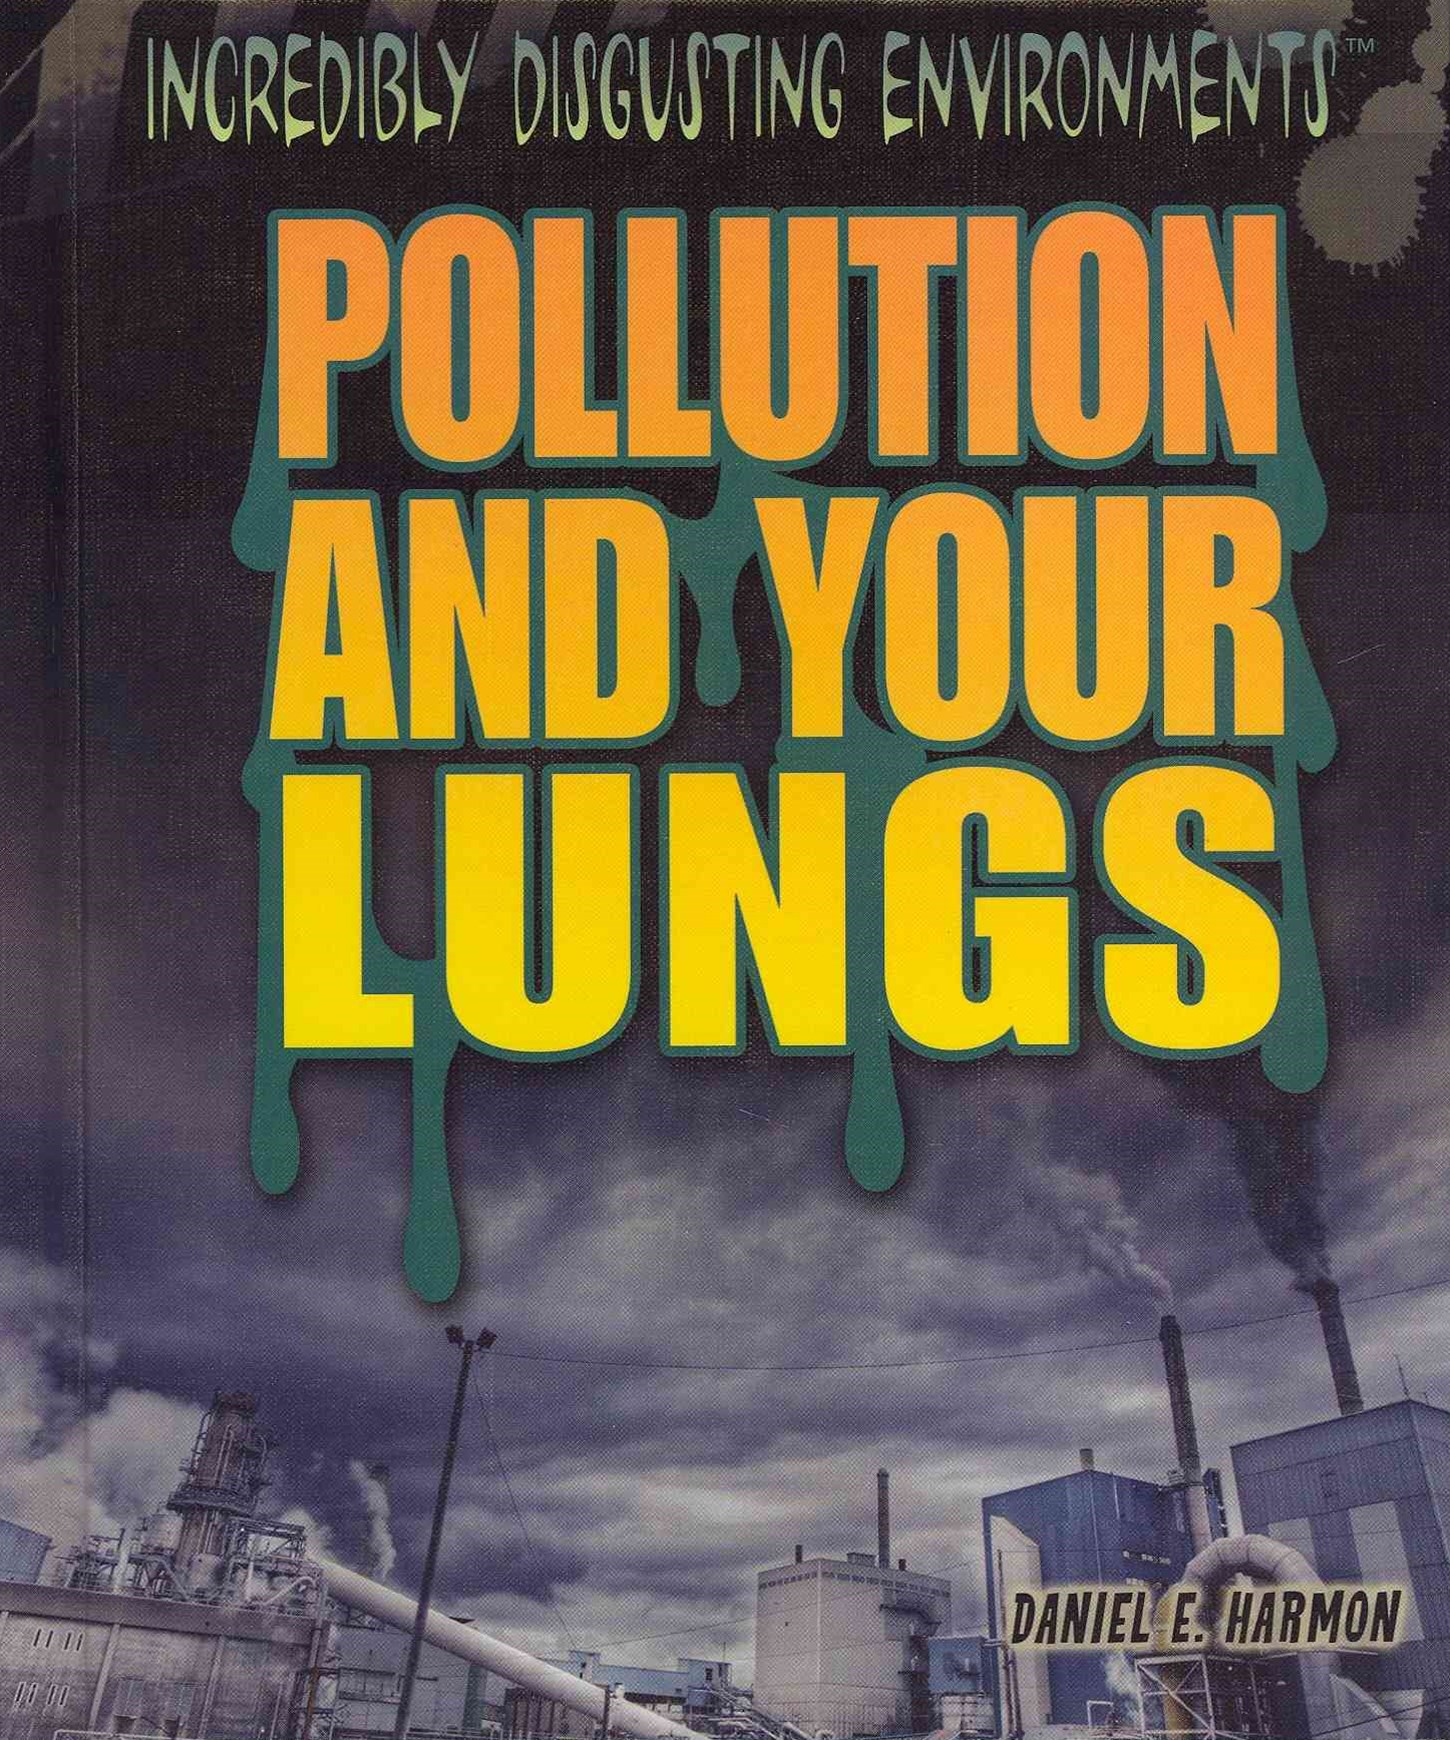 Pollution and Your Lungs